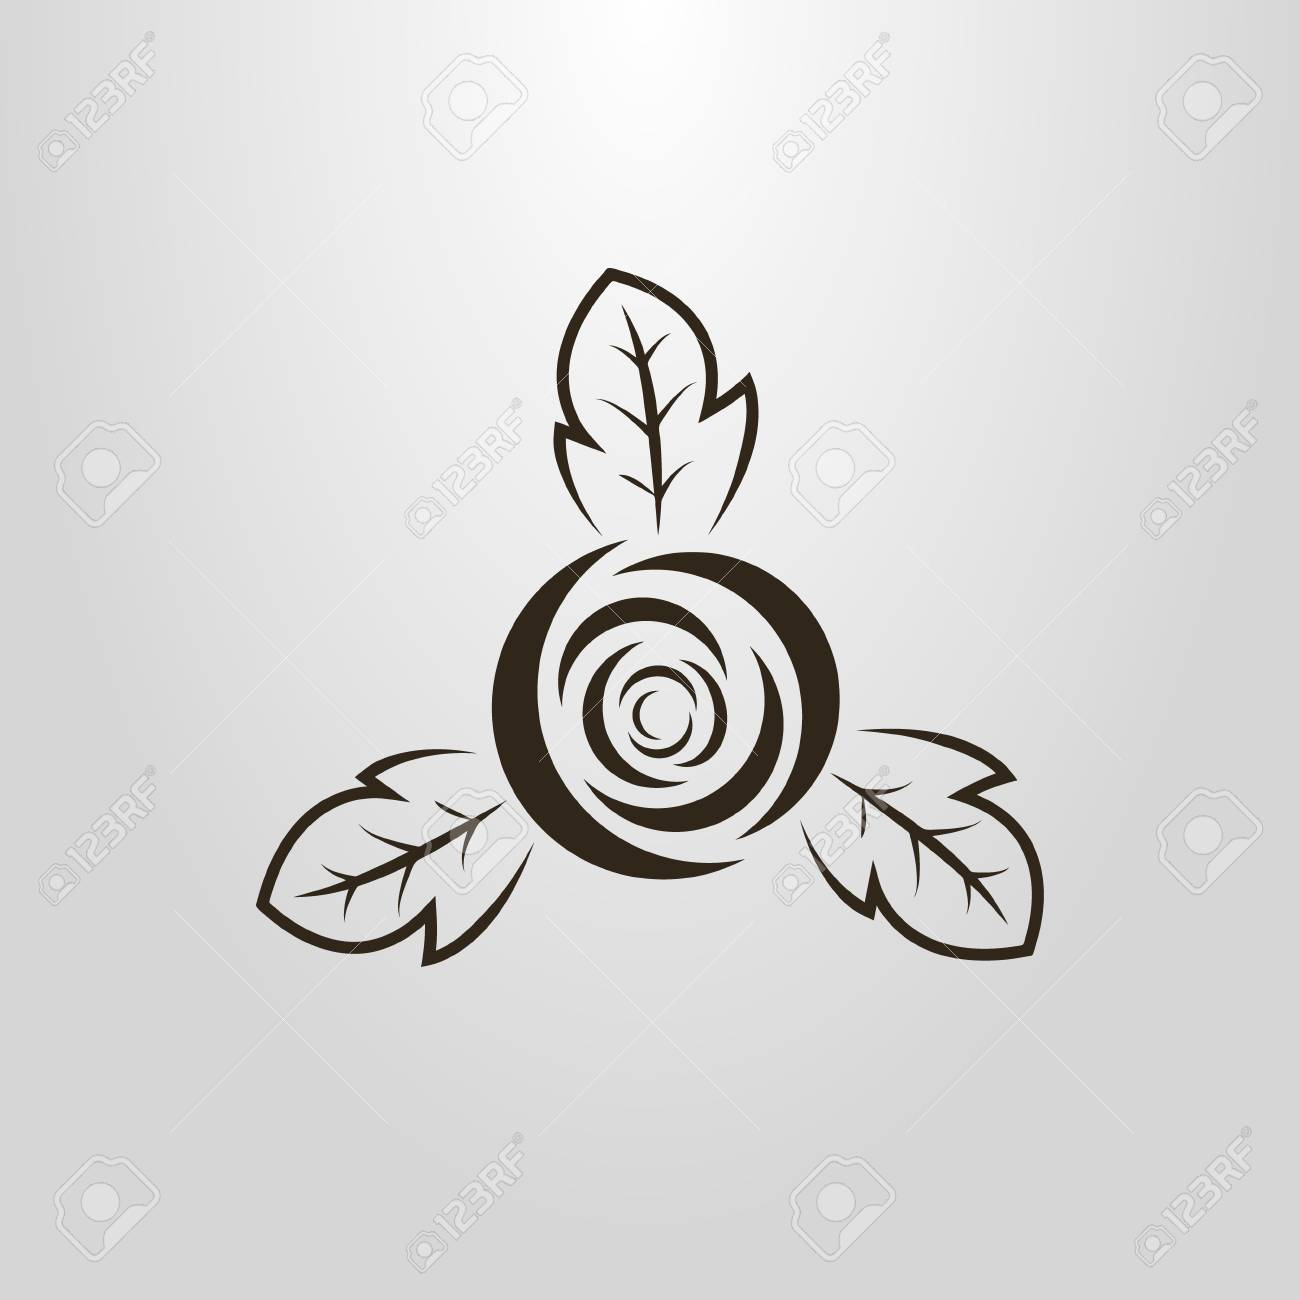 Black And White Simple Vector Pictogram Of An Abstract Rose Bud